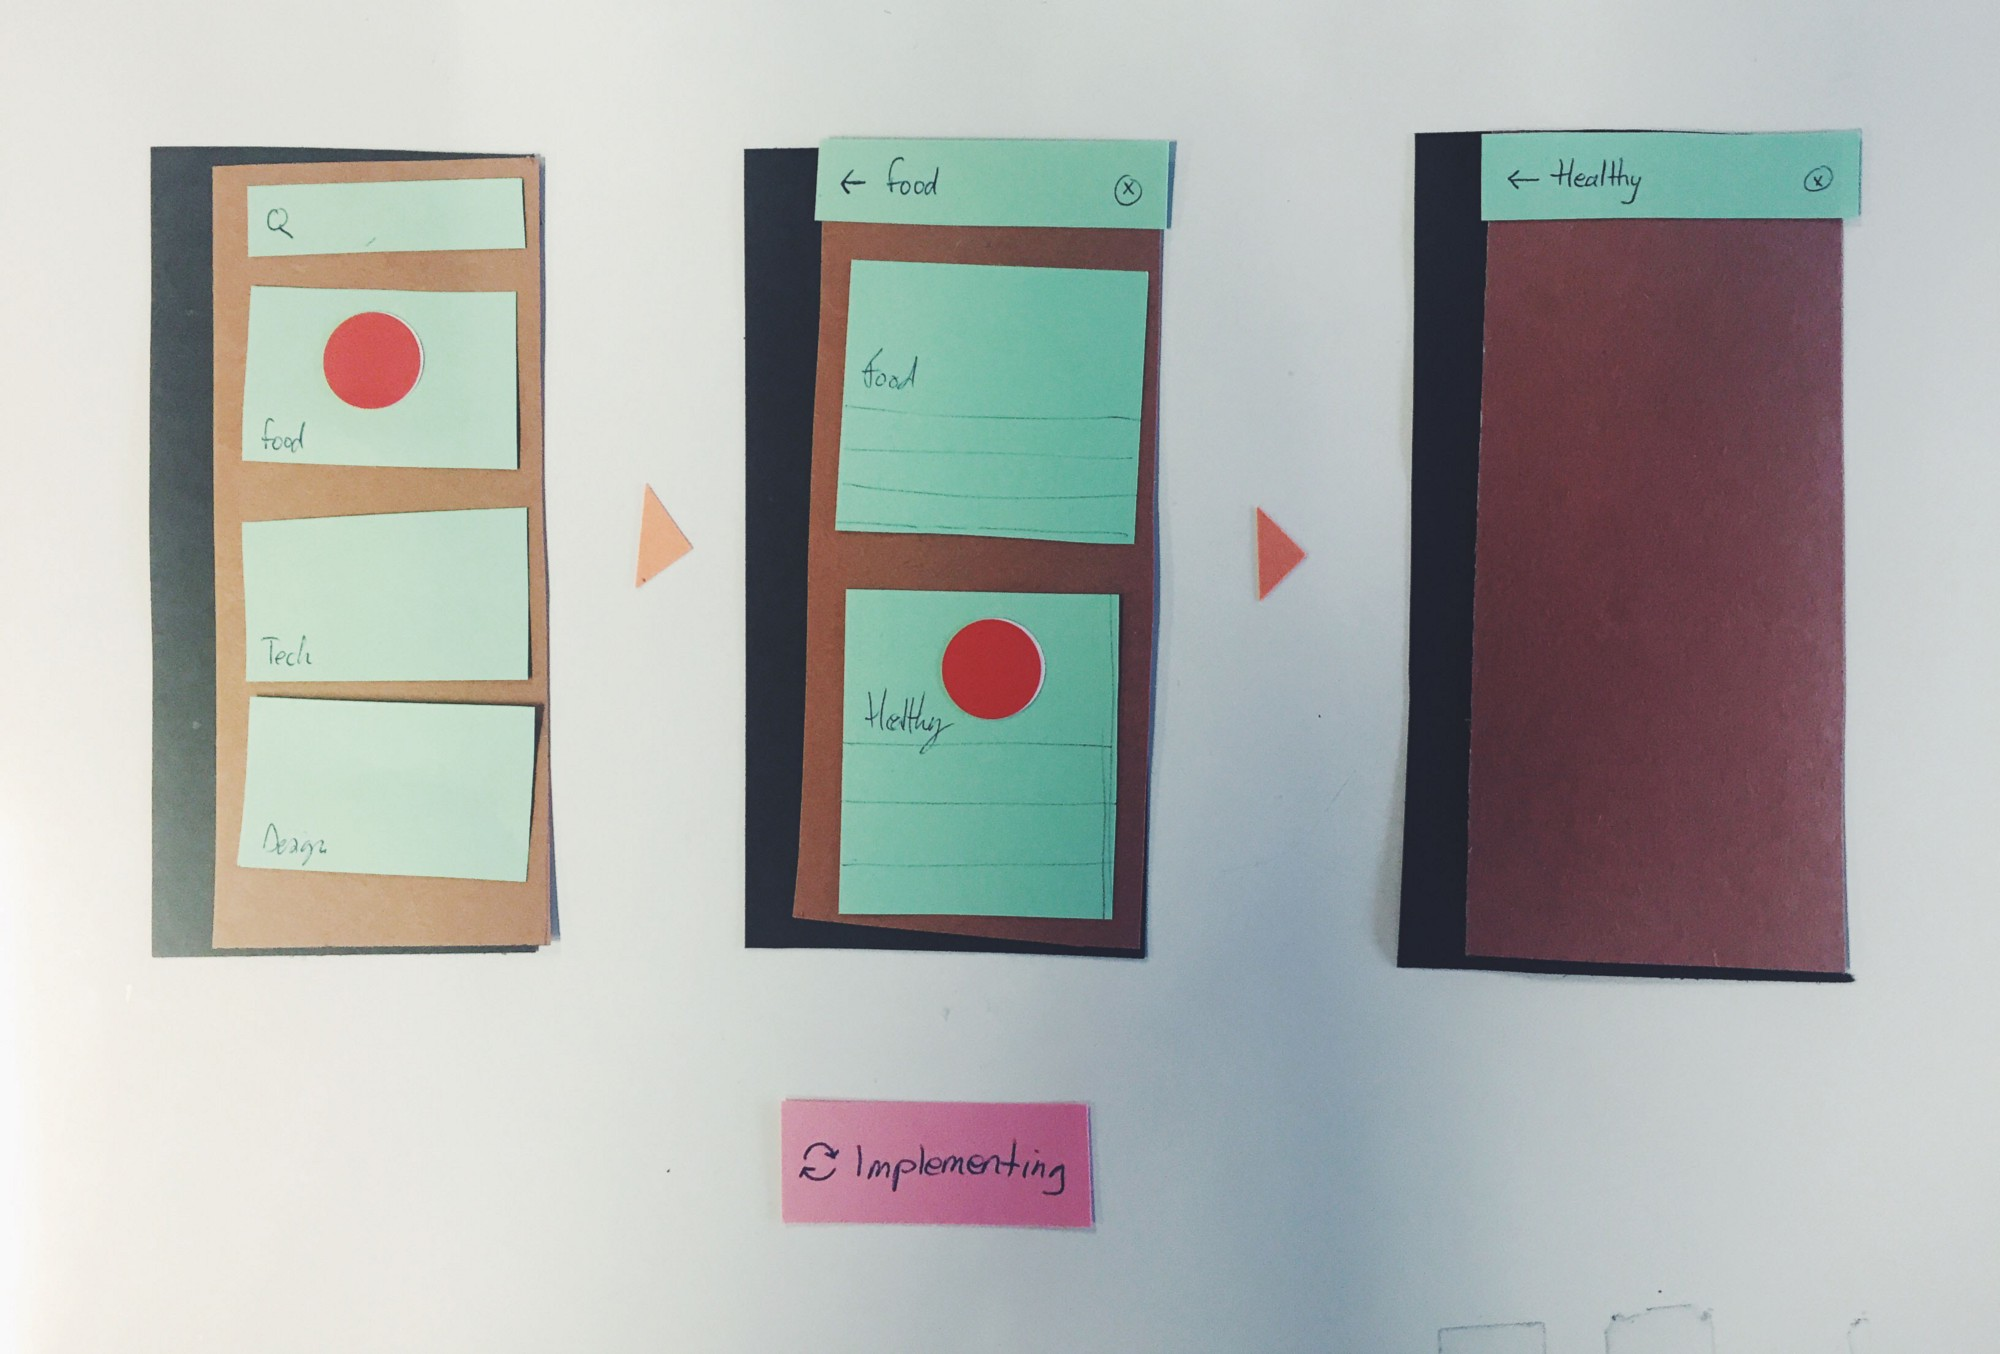 Prototyping our new discovery experience with paper